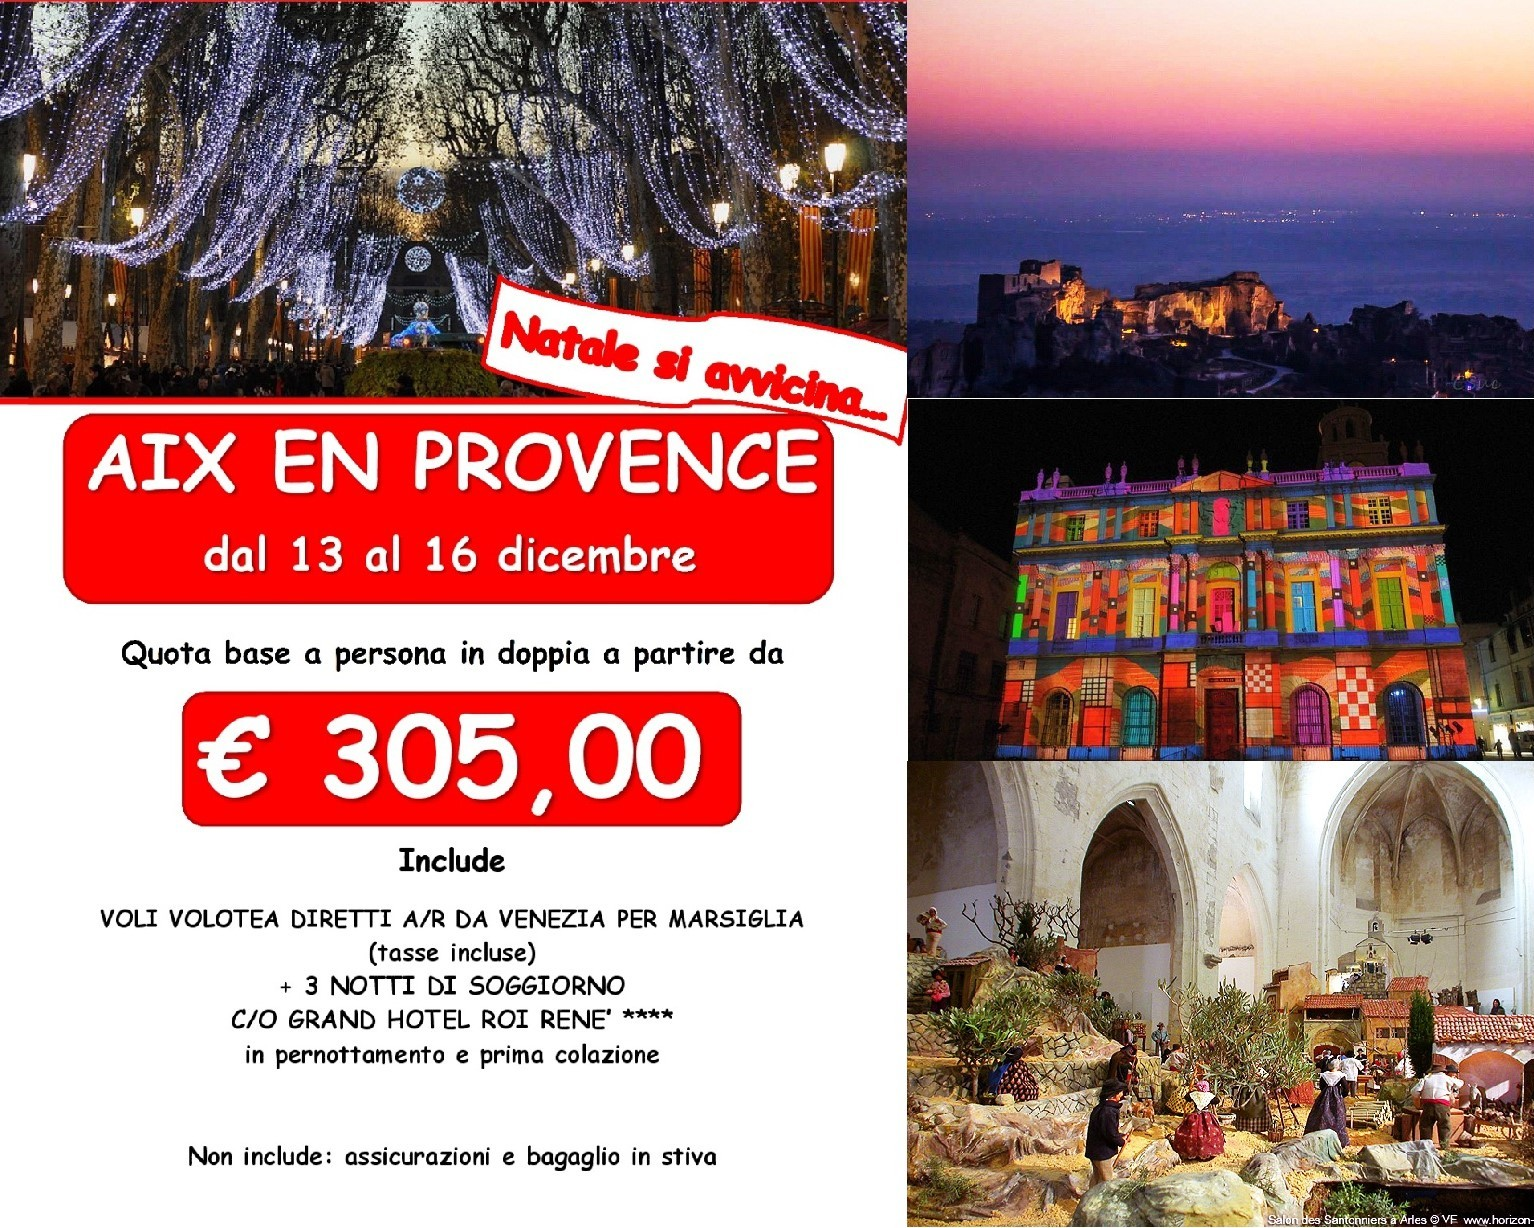 aix-en-provence-collage